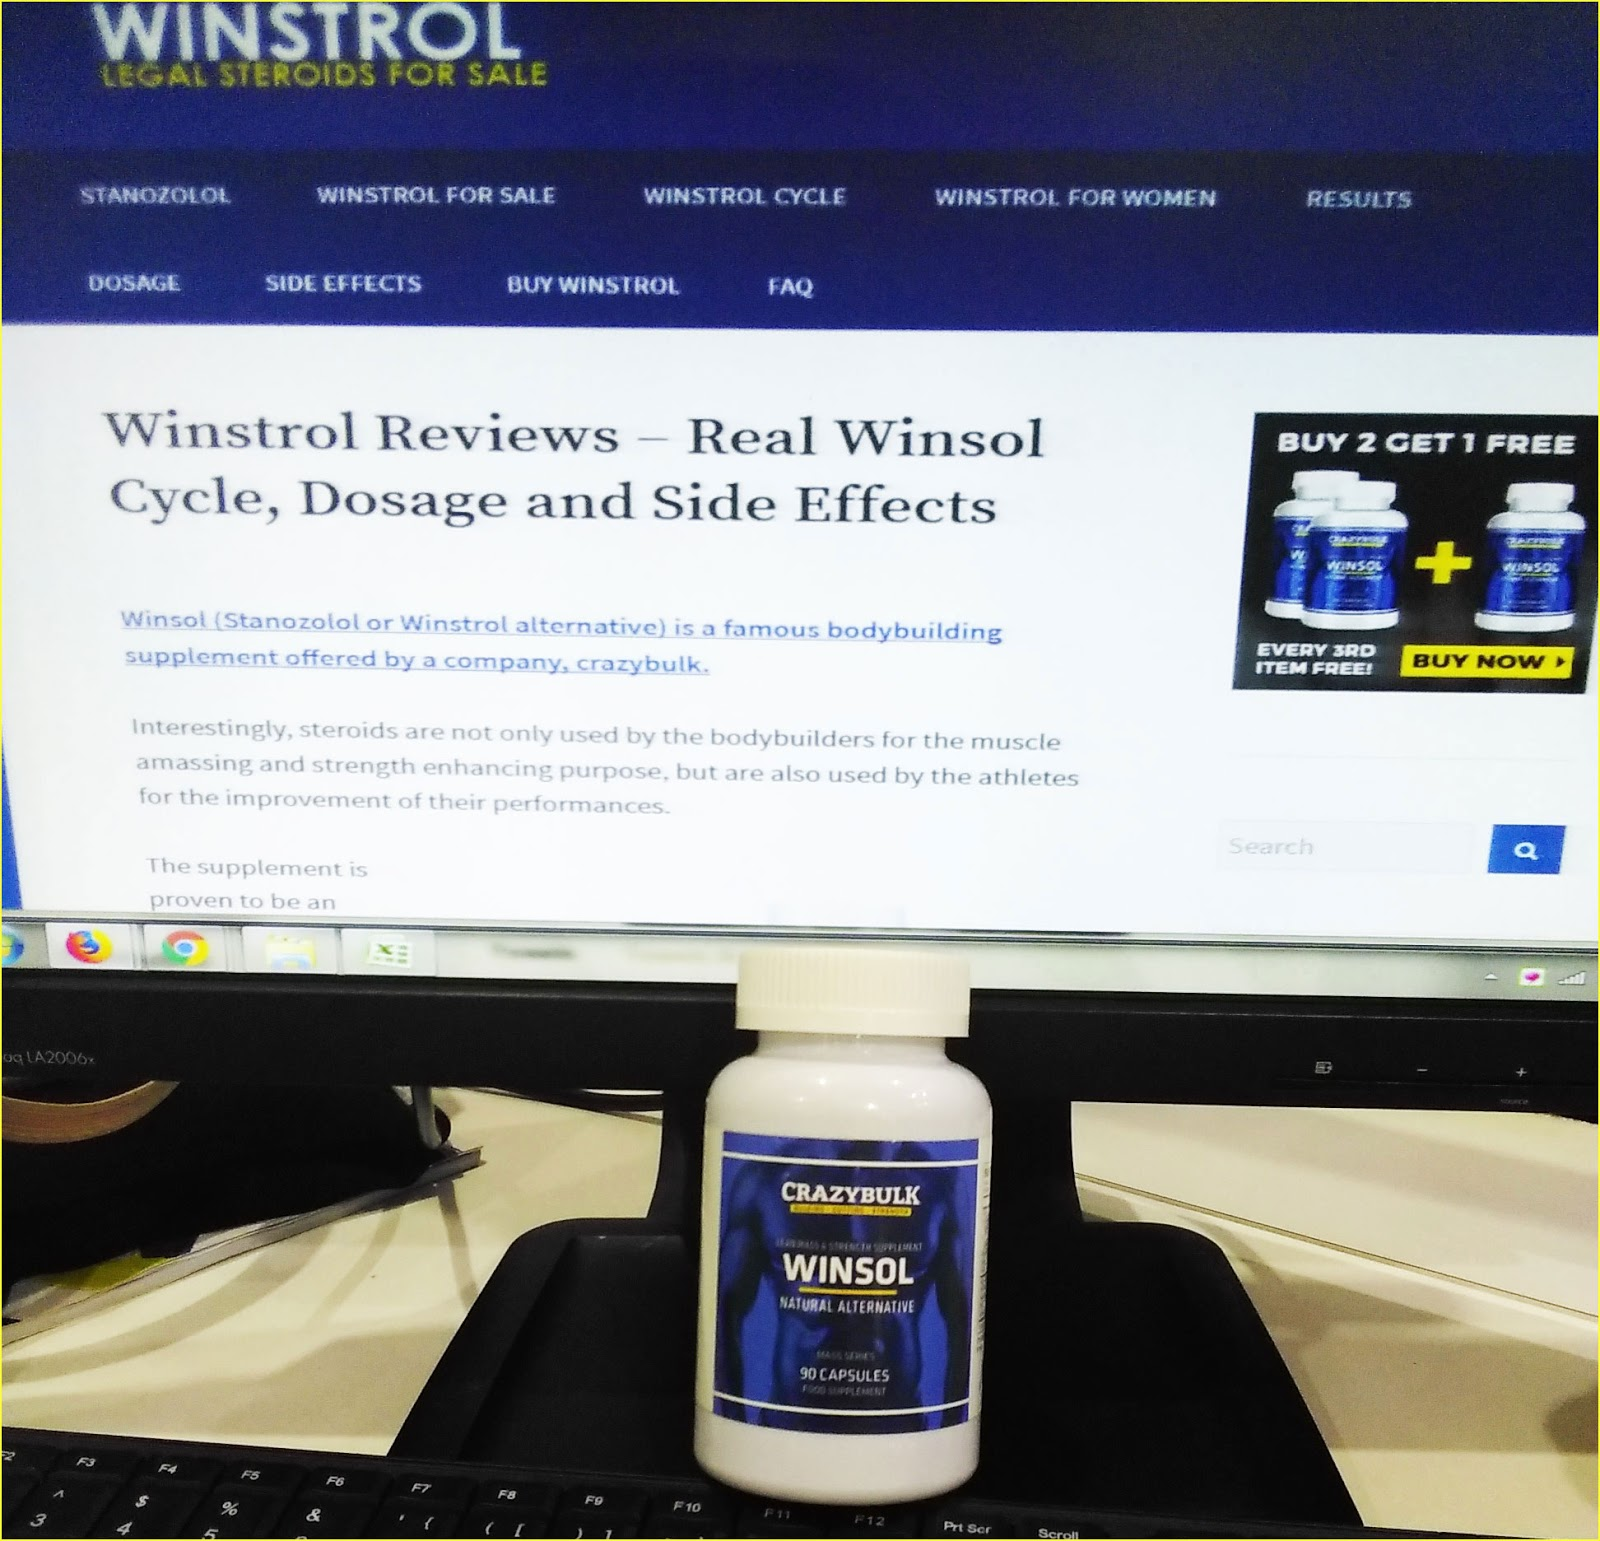 Winstrol GNC – Where to Buy Winsol at GNC | Buy Winstrol